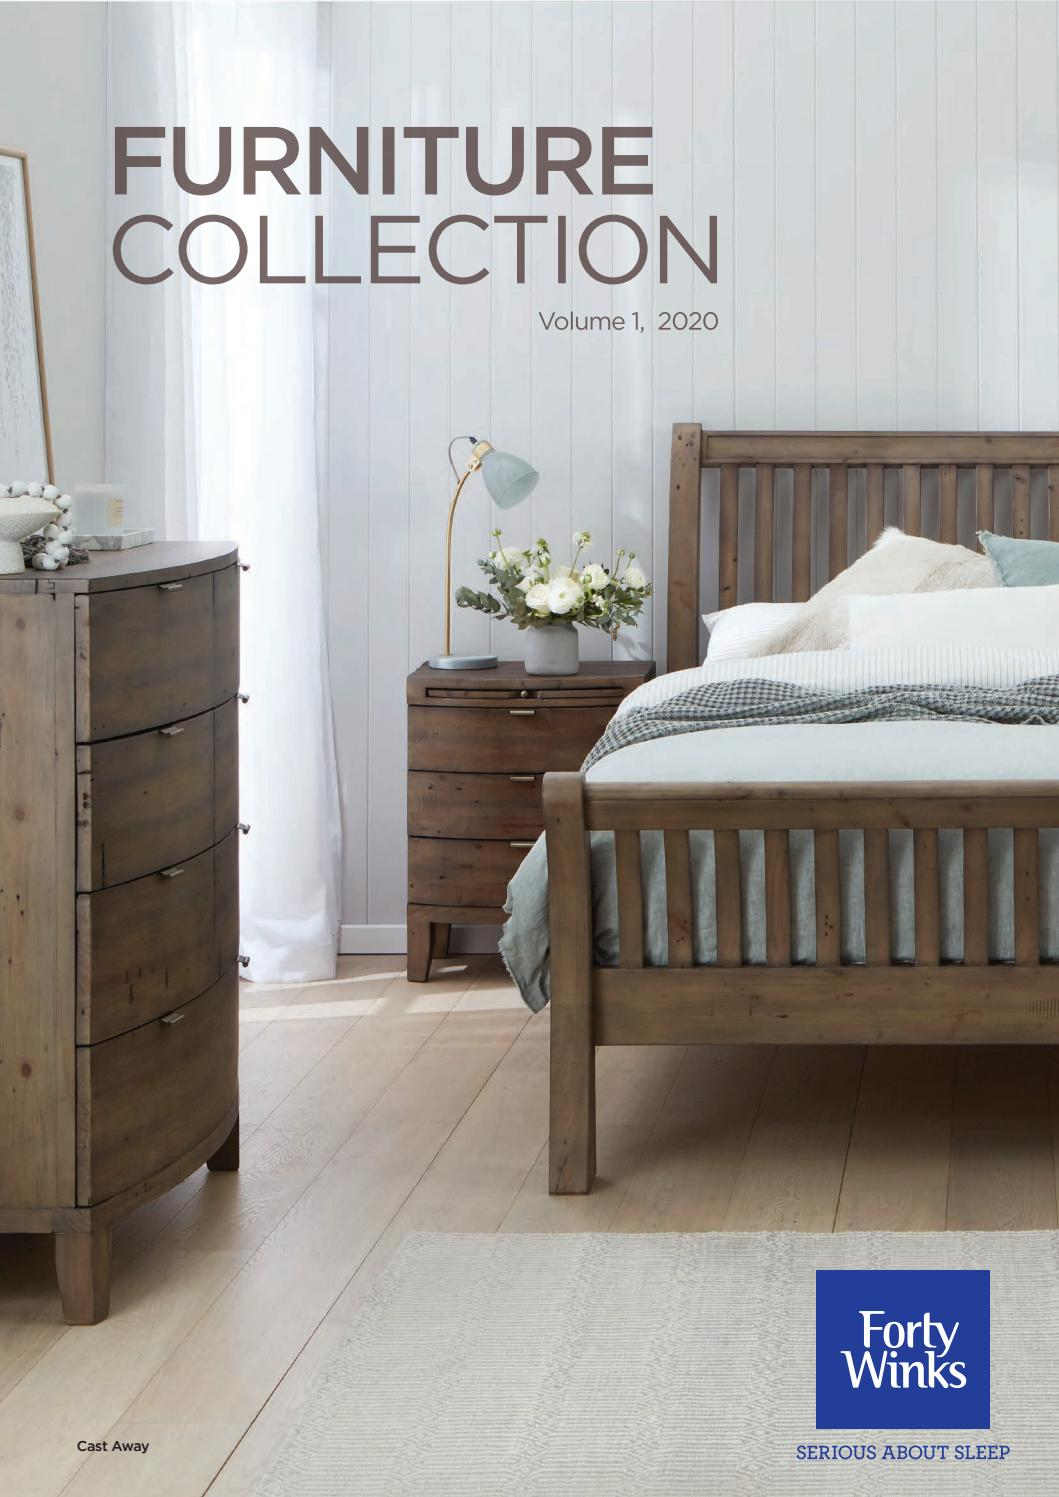 Forty Winks 2020 Furniture Collection Vol 1 By Fortywinksaustralia Issuu